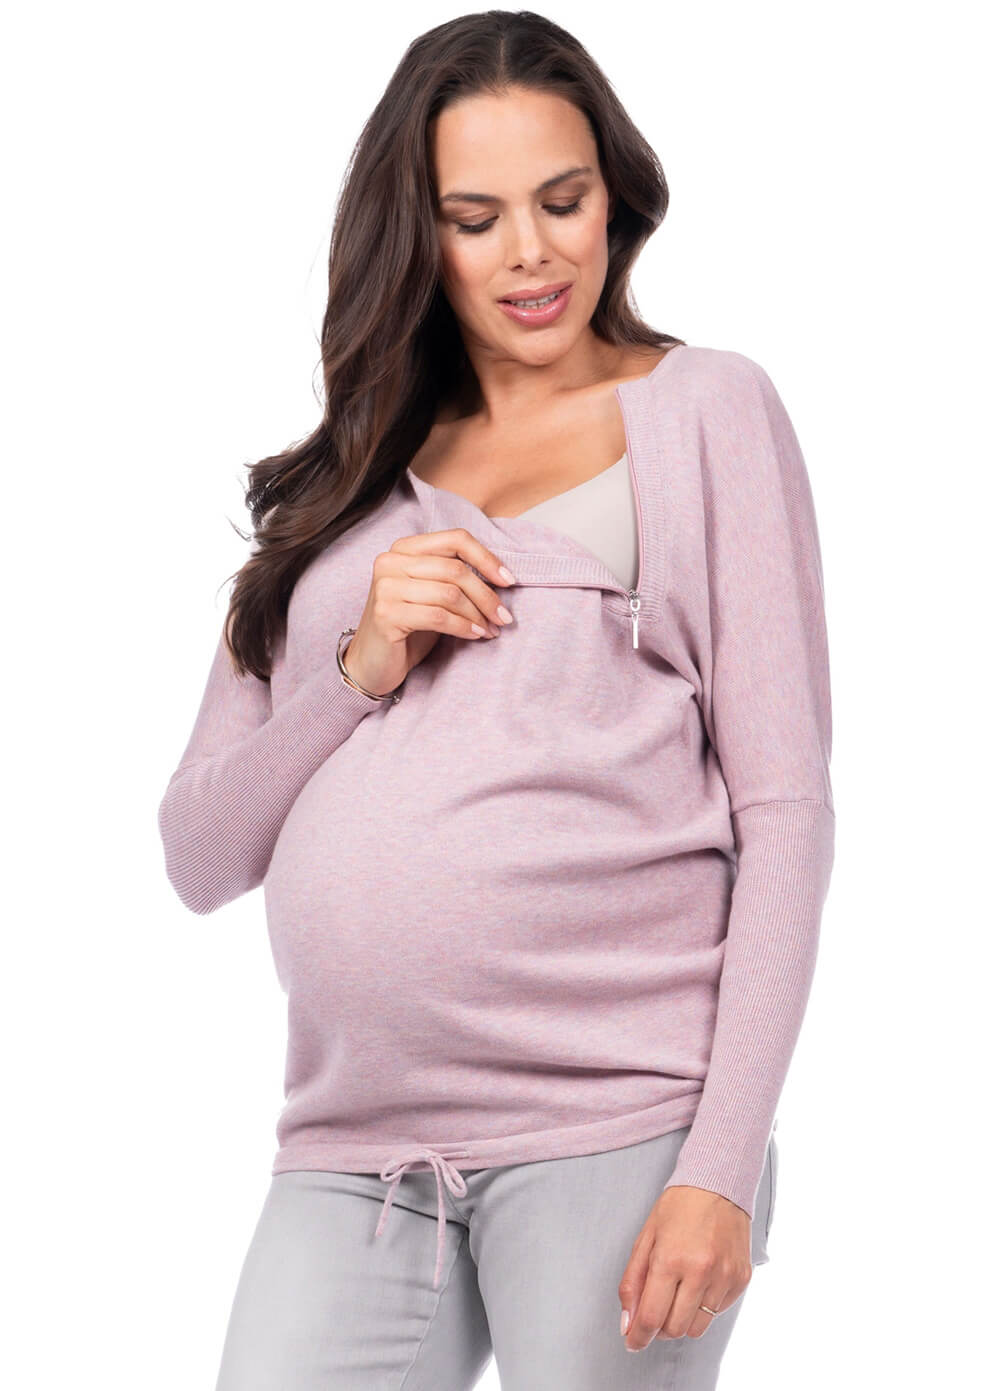 Elowen Maternity Nursing Sweater in Pink by Seraphine